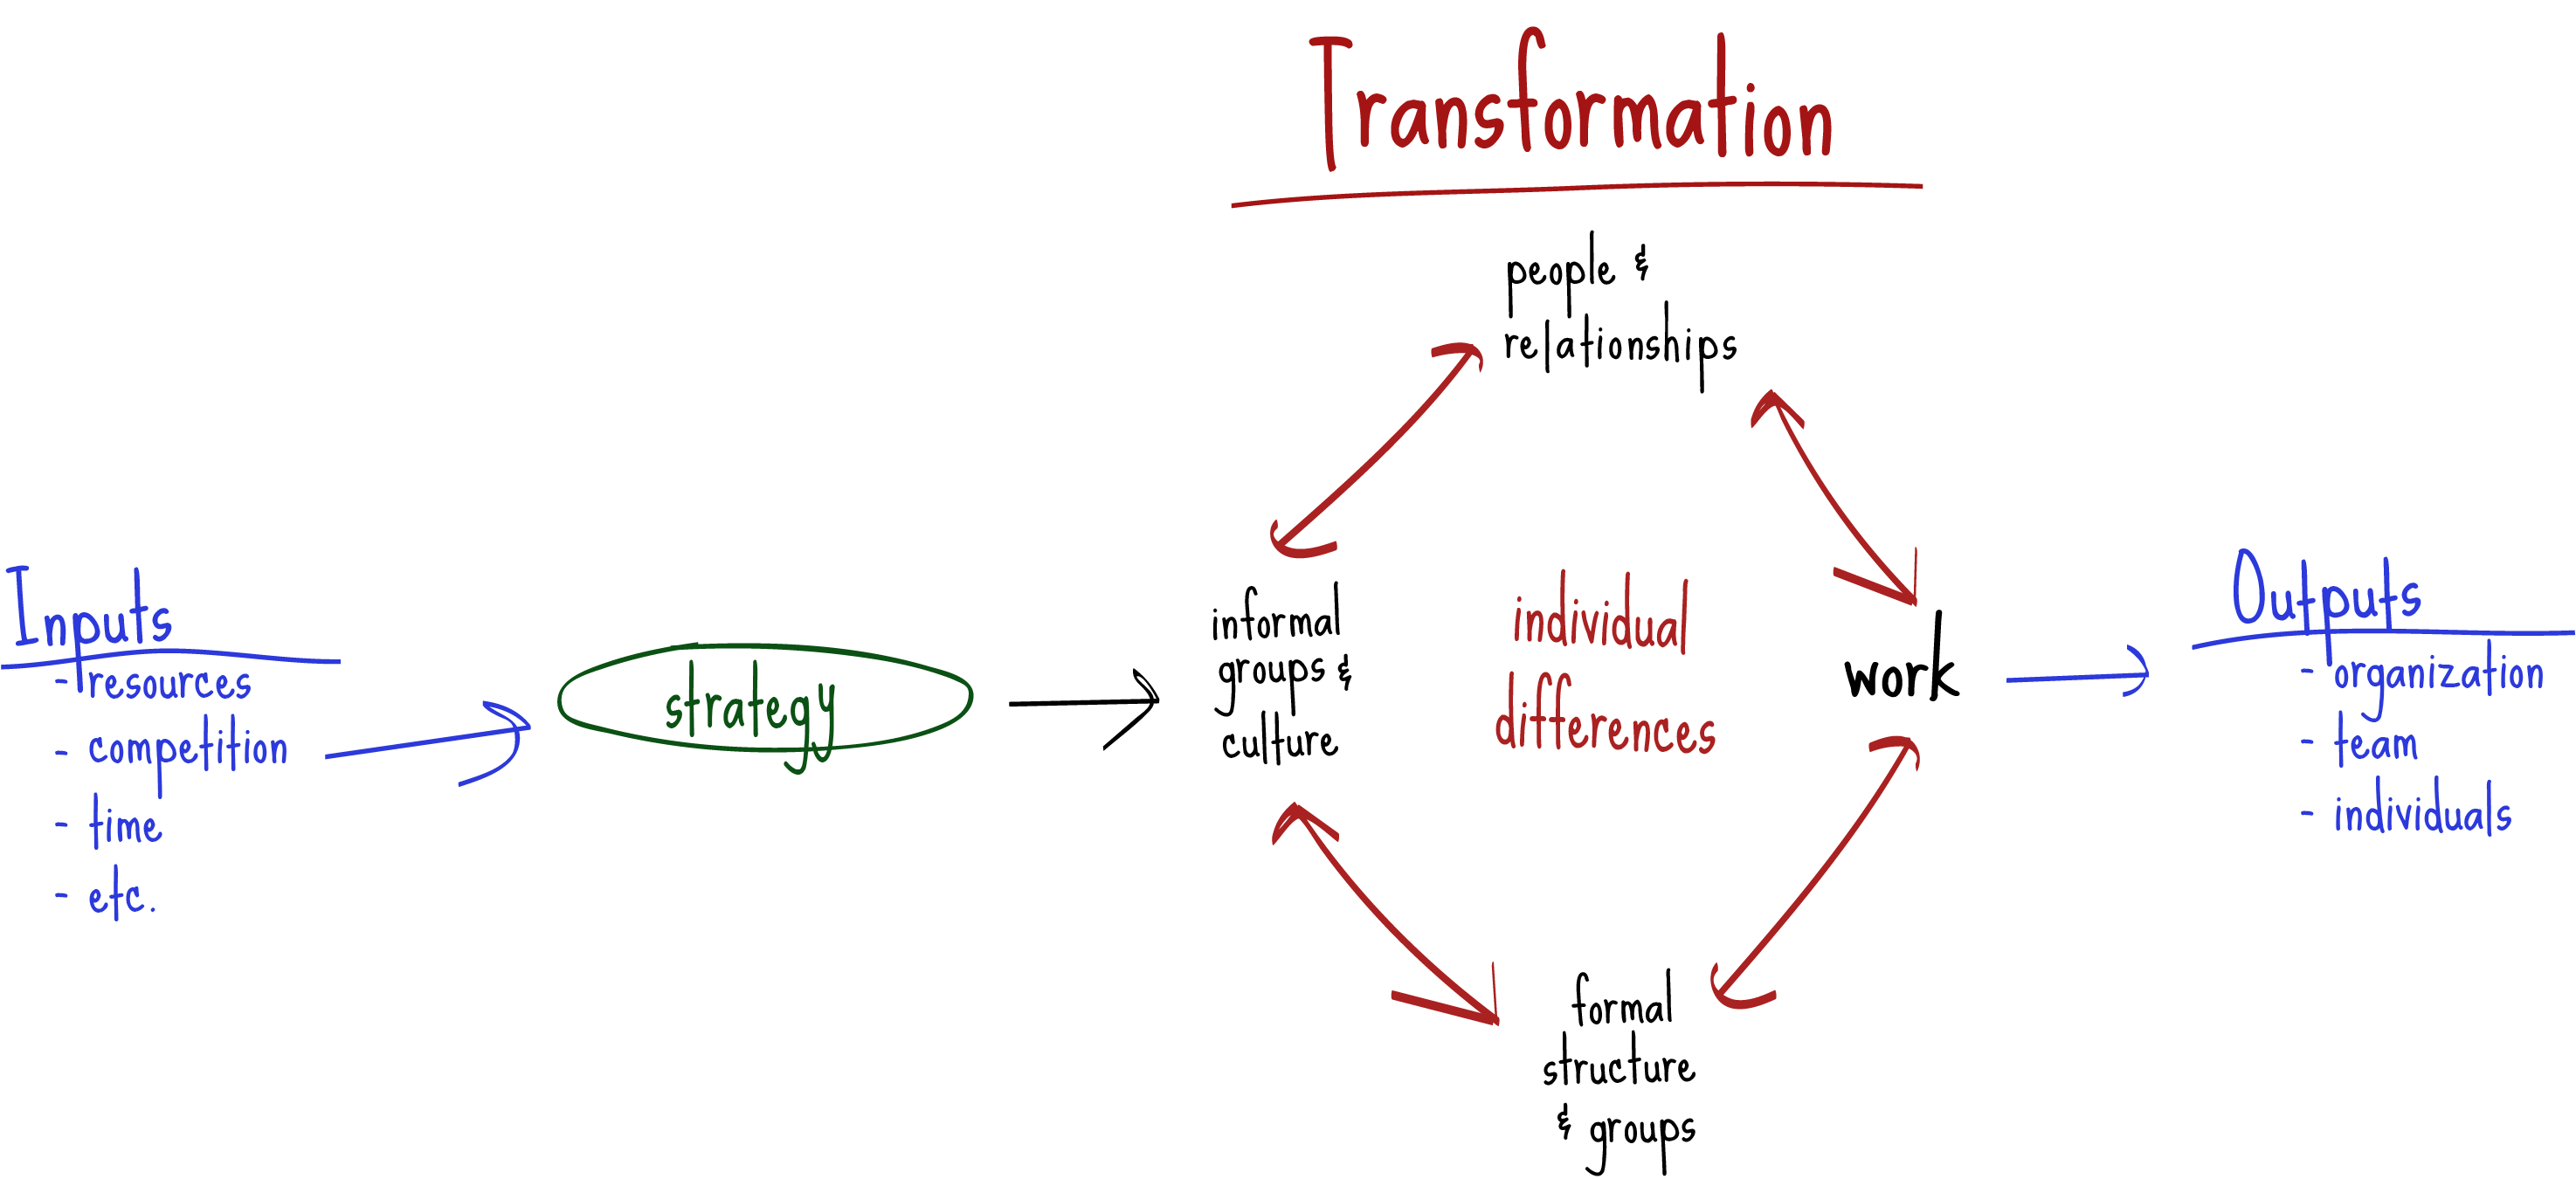 A diagram of organizational transformation concepts.